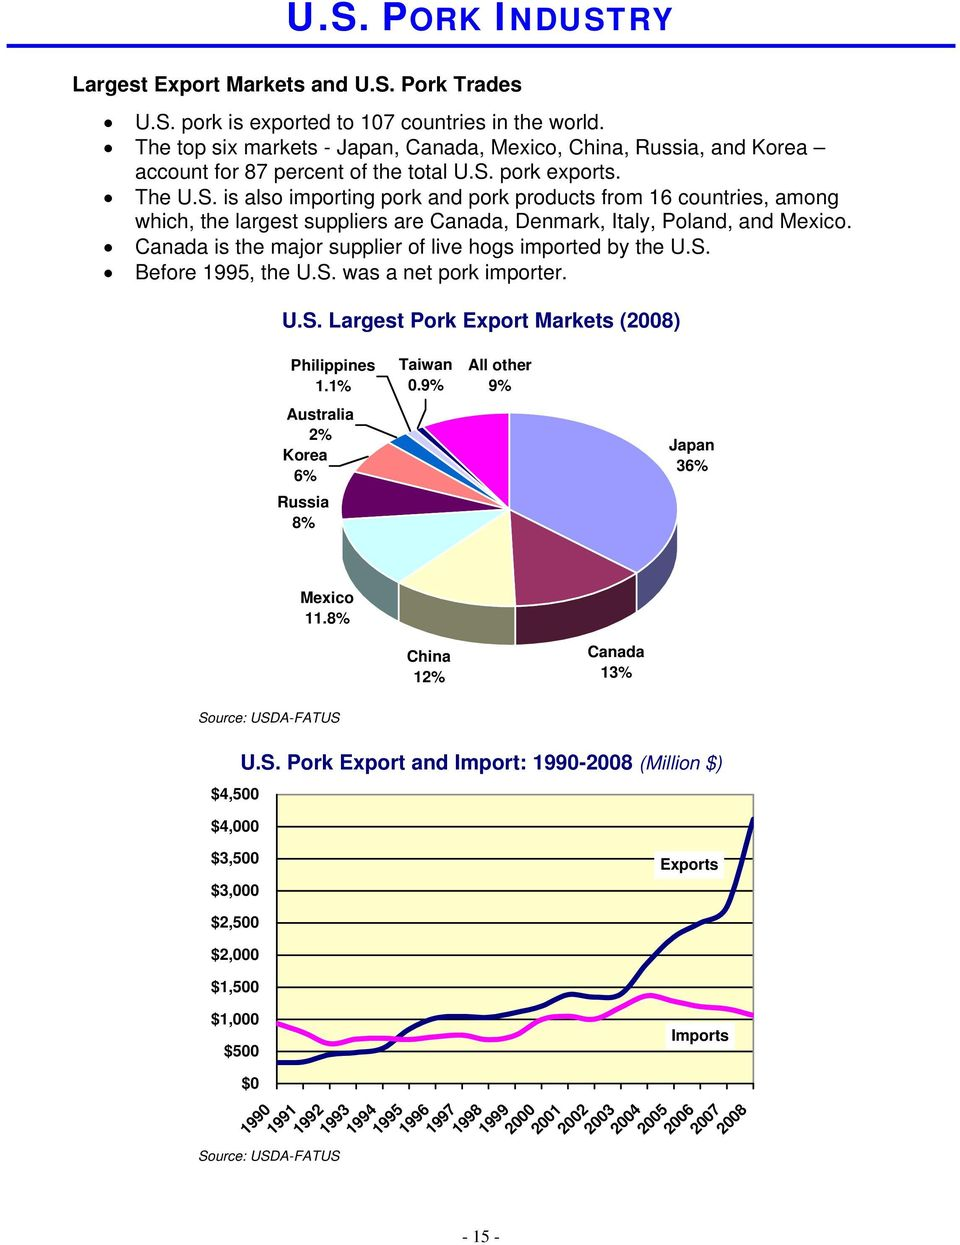 pork exports. The U.S. is also importing pork and pork products from 16 countries, among which, the largest suppliers are Canada, Denmark, Italy, Poland, and Mexico.